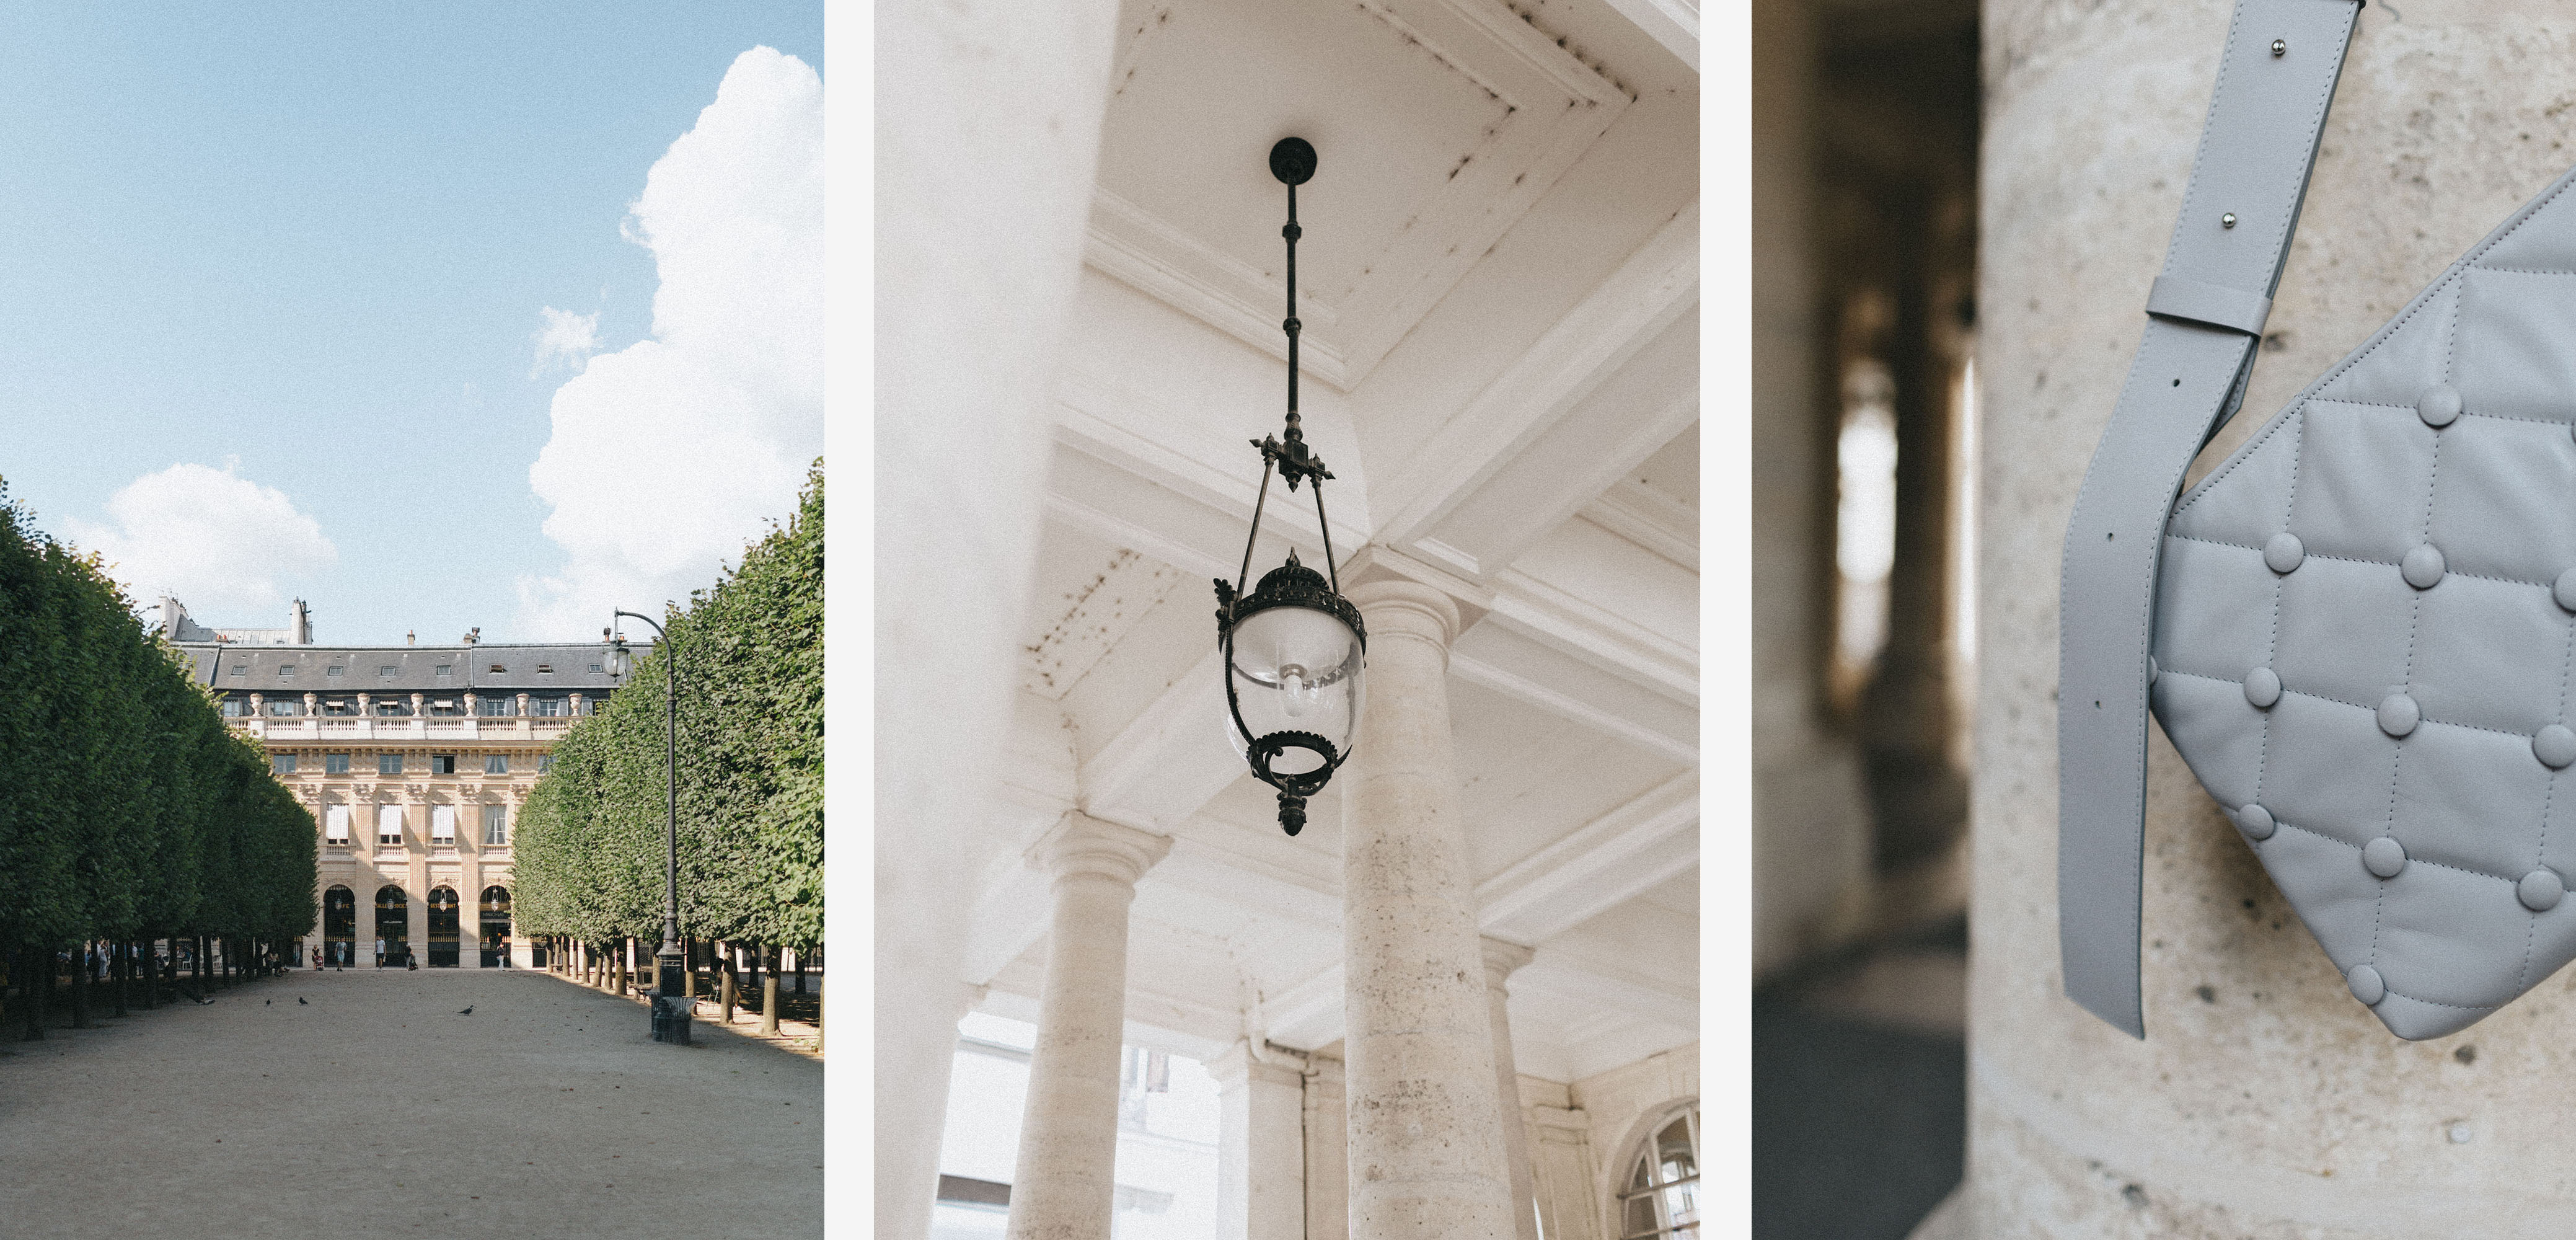 Palais Royale garden in Summer, Paris. White ceilings and columns in Palais Royale, Paris.  Laimushka grey leather quilted handbag with shoulder strap in front of the column in Palais Royale